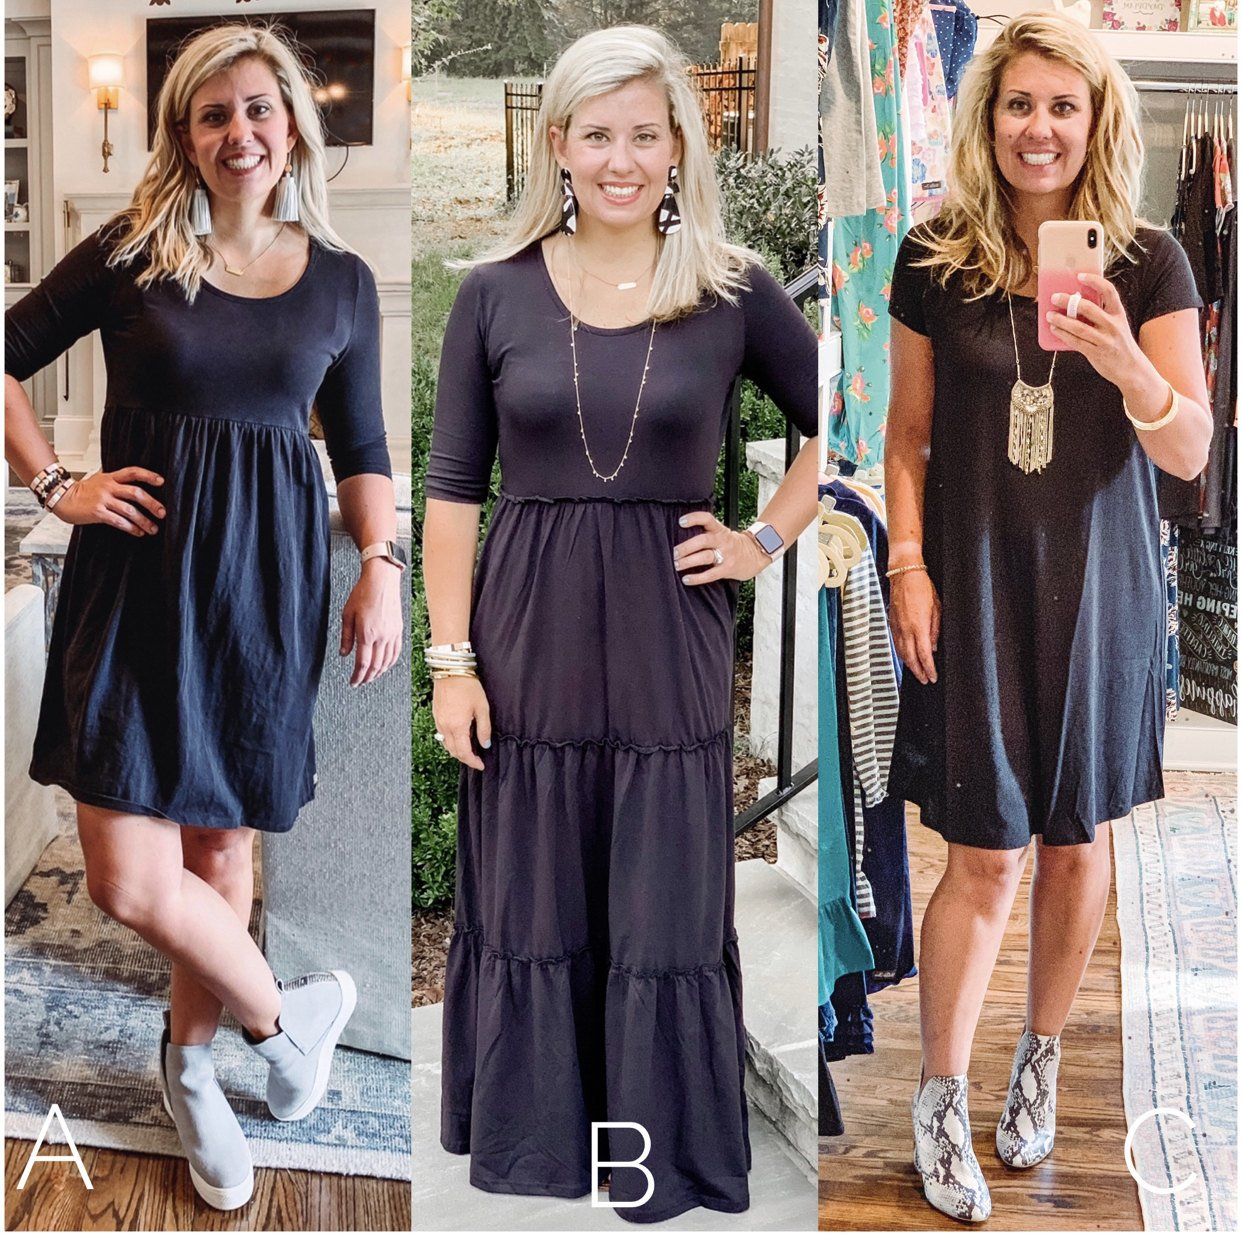 Black dress style options